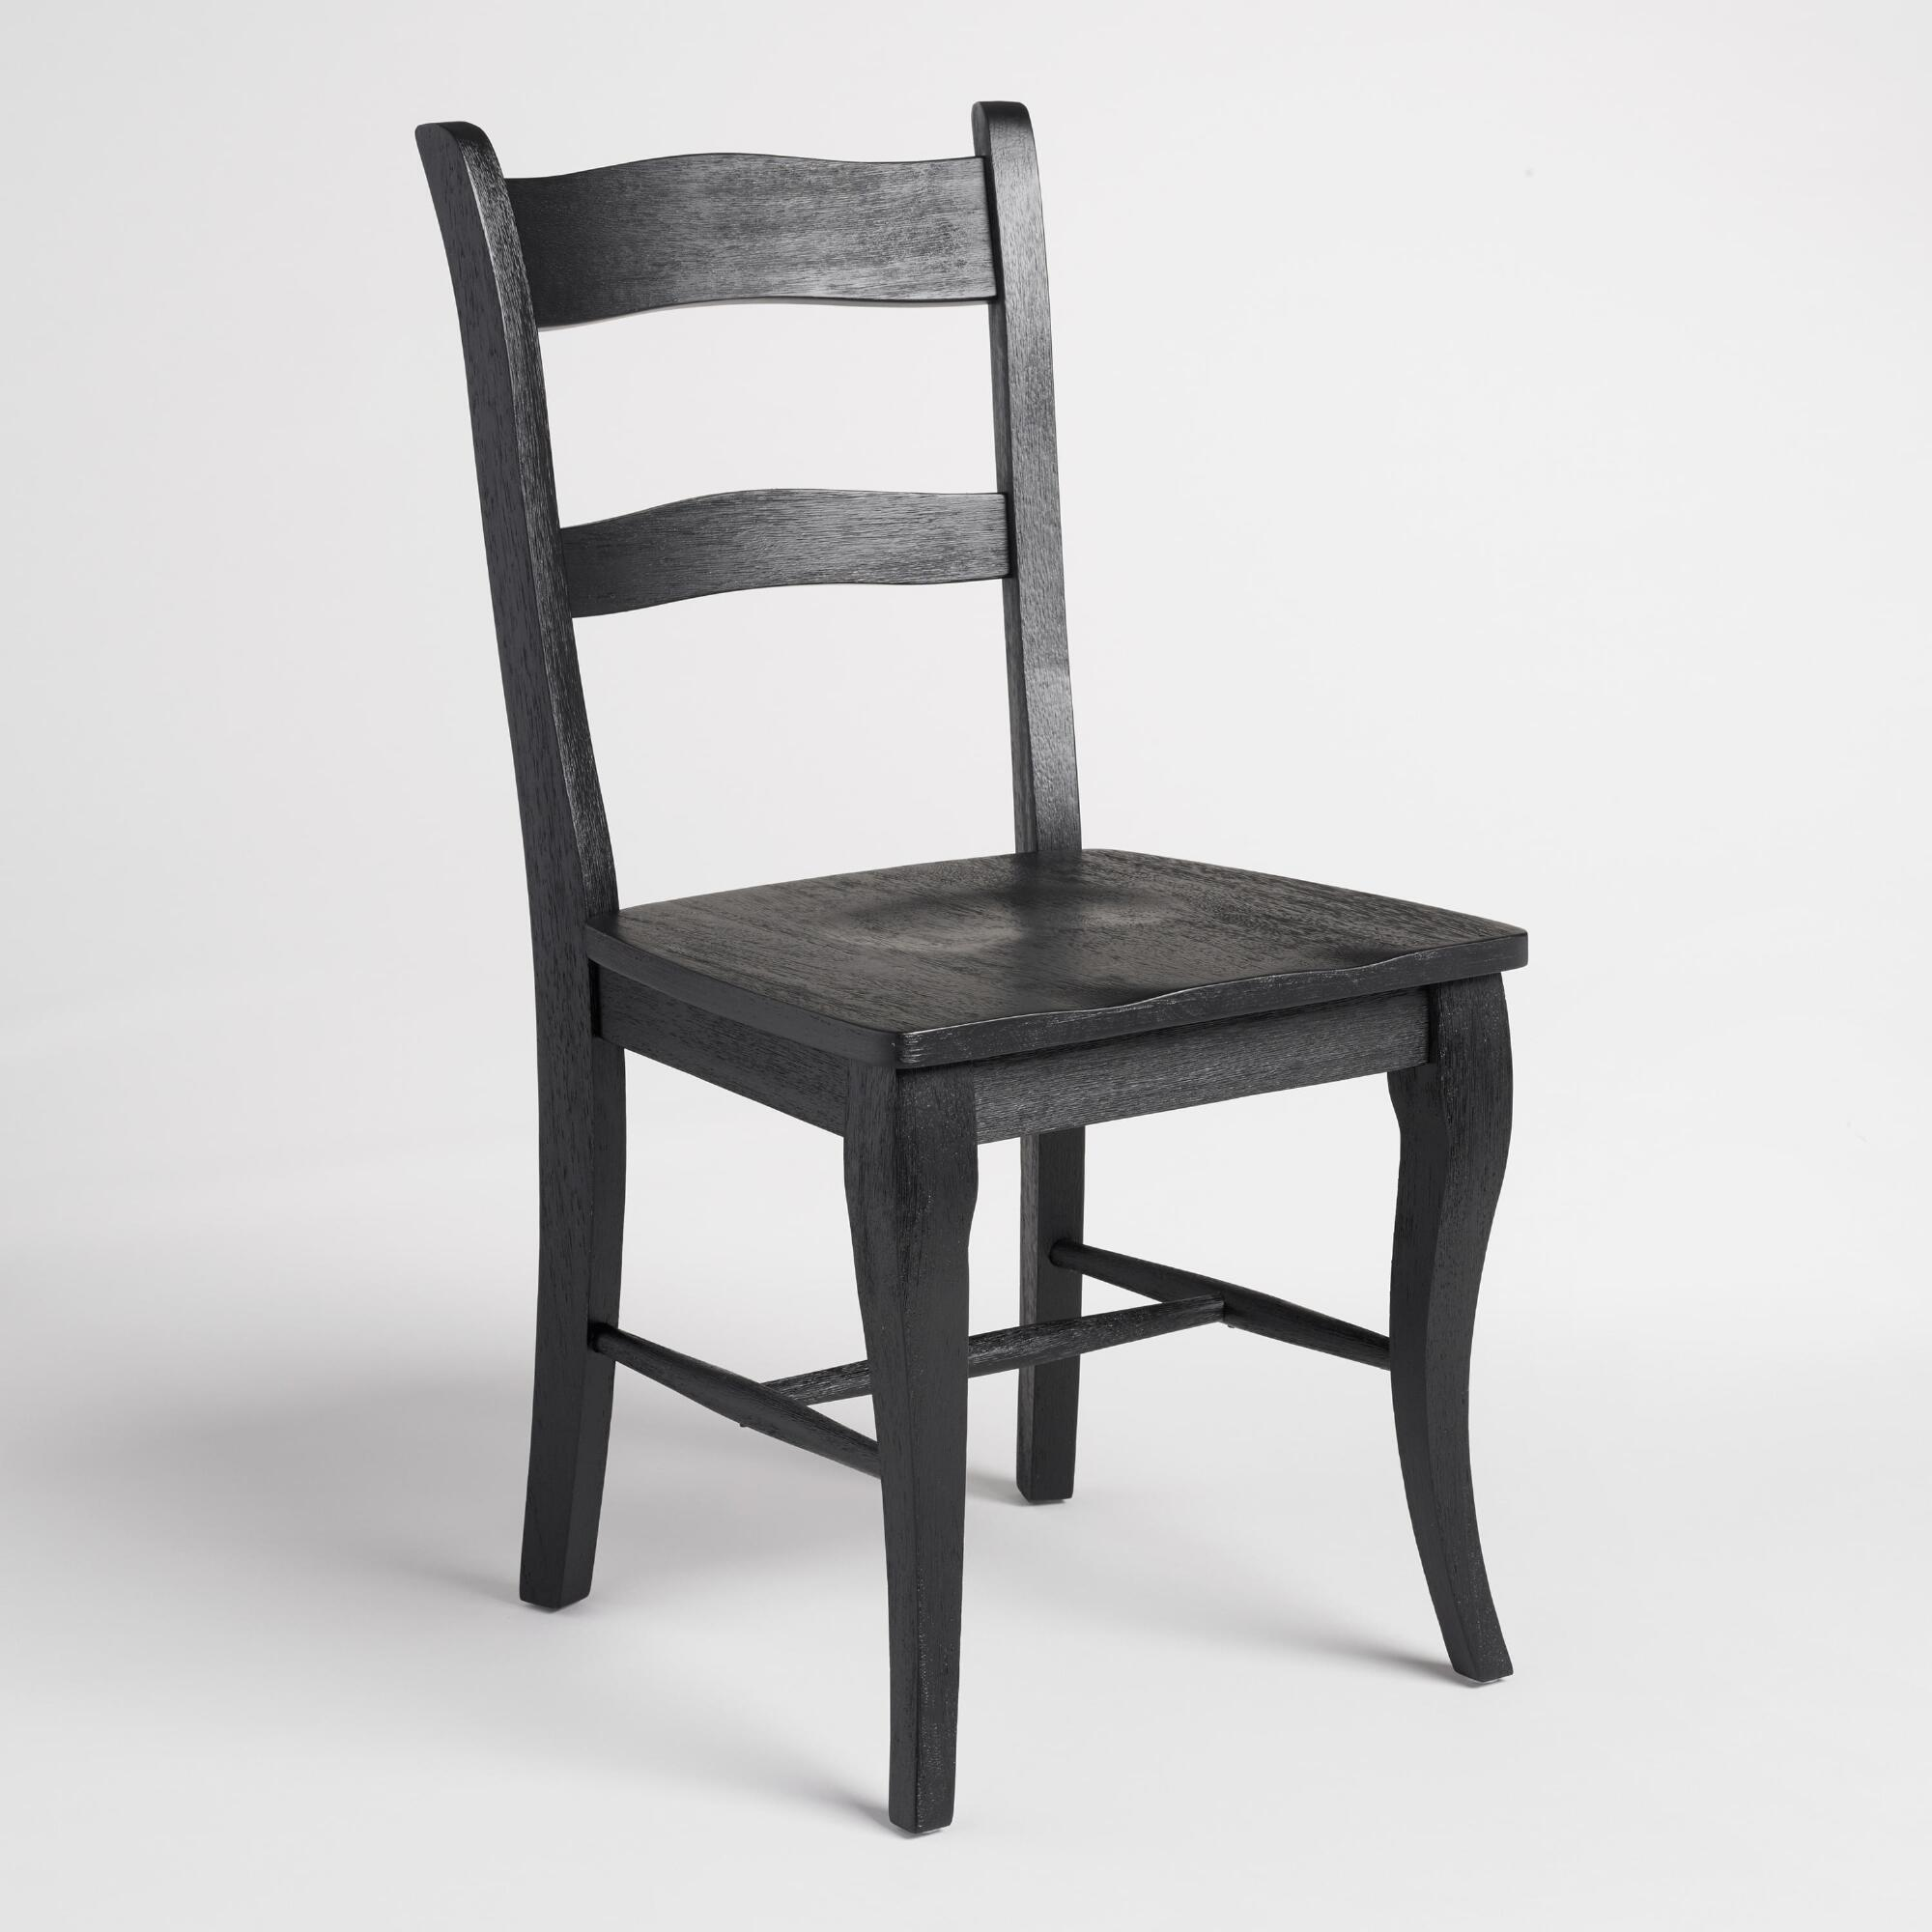 Black Dining Furniture: Black Wood Jozy Dining Chairs Set Of 2